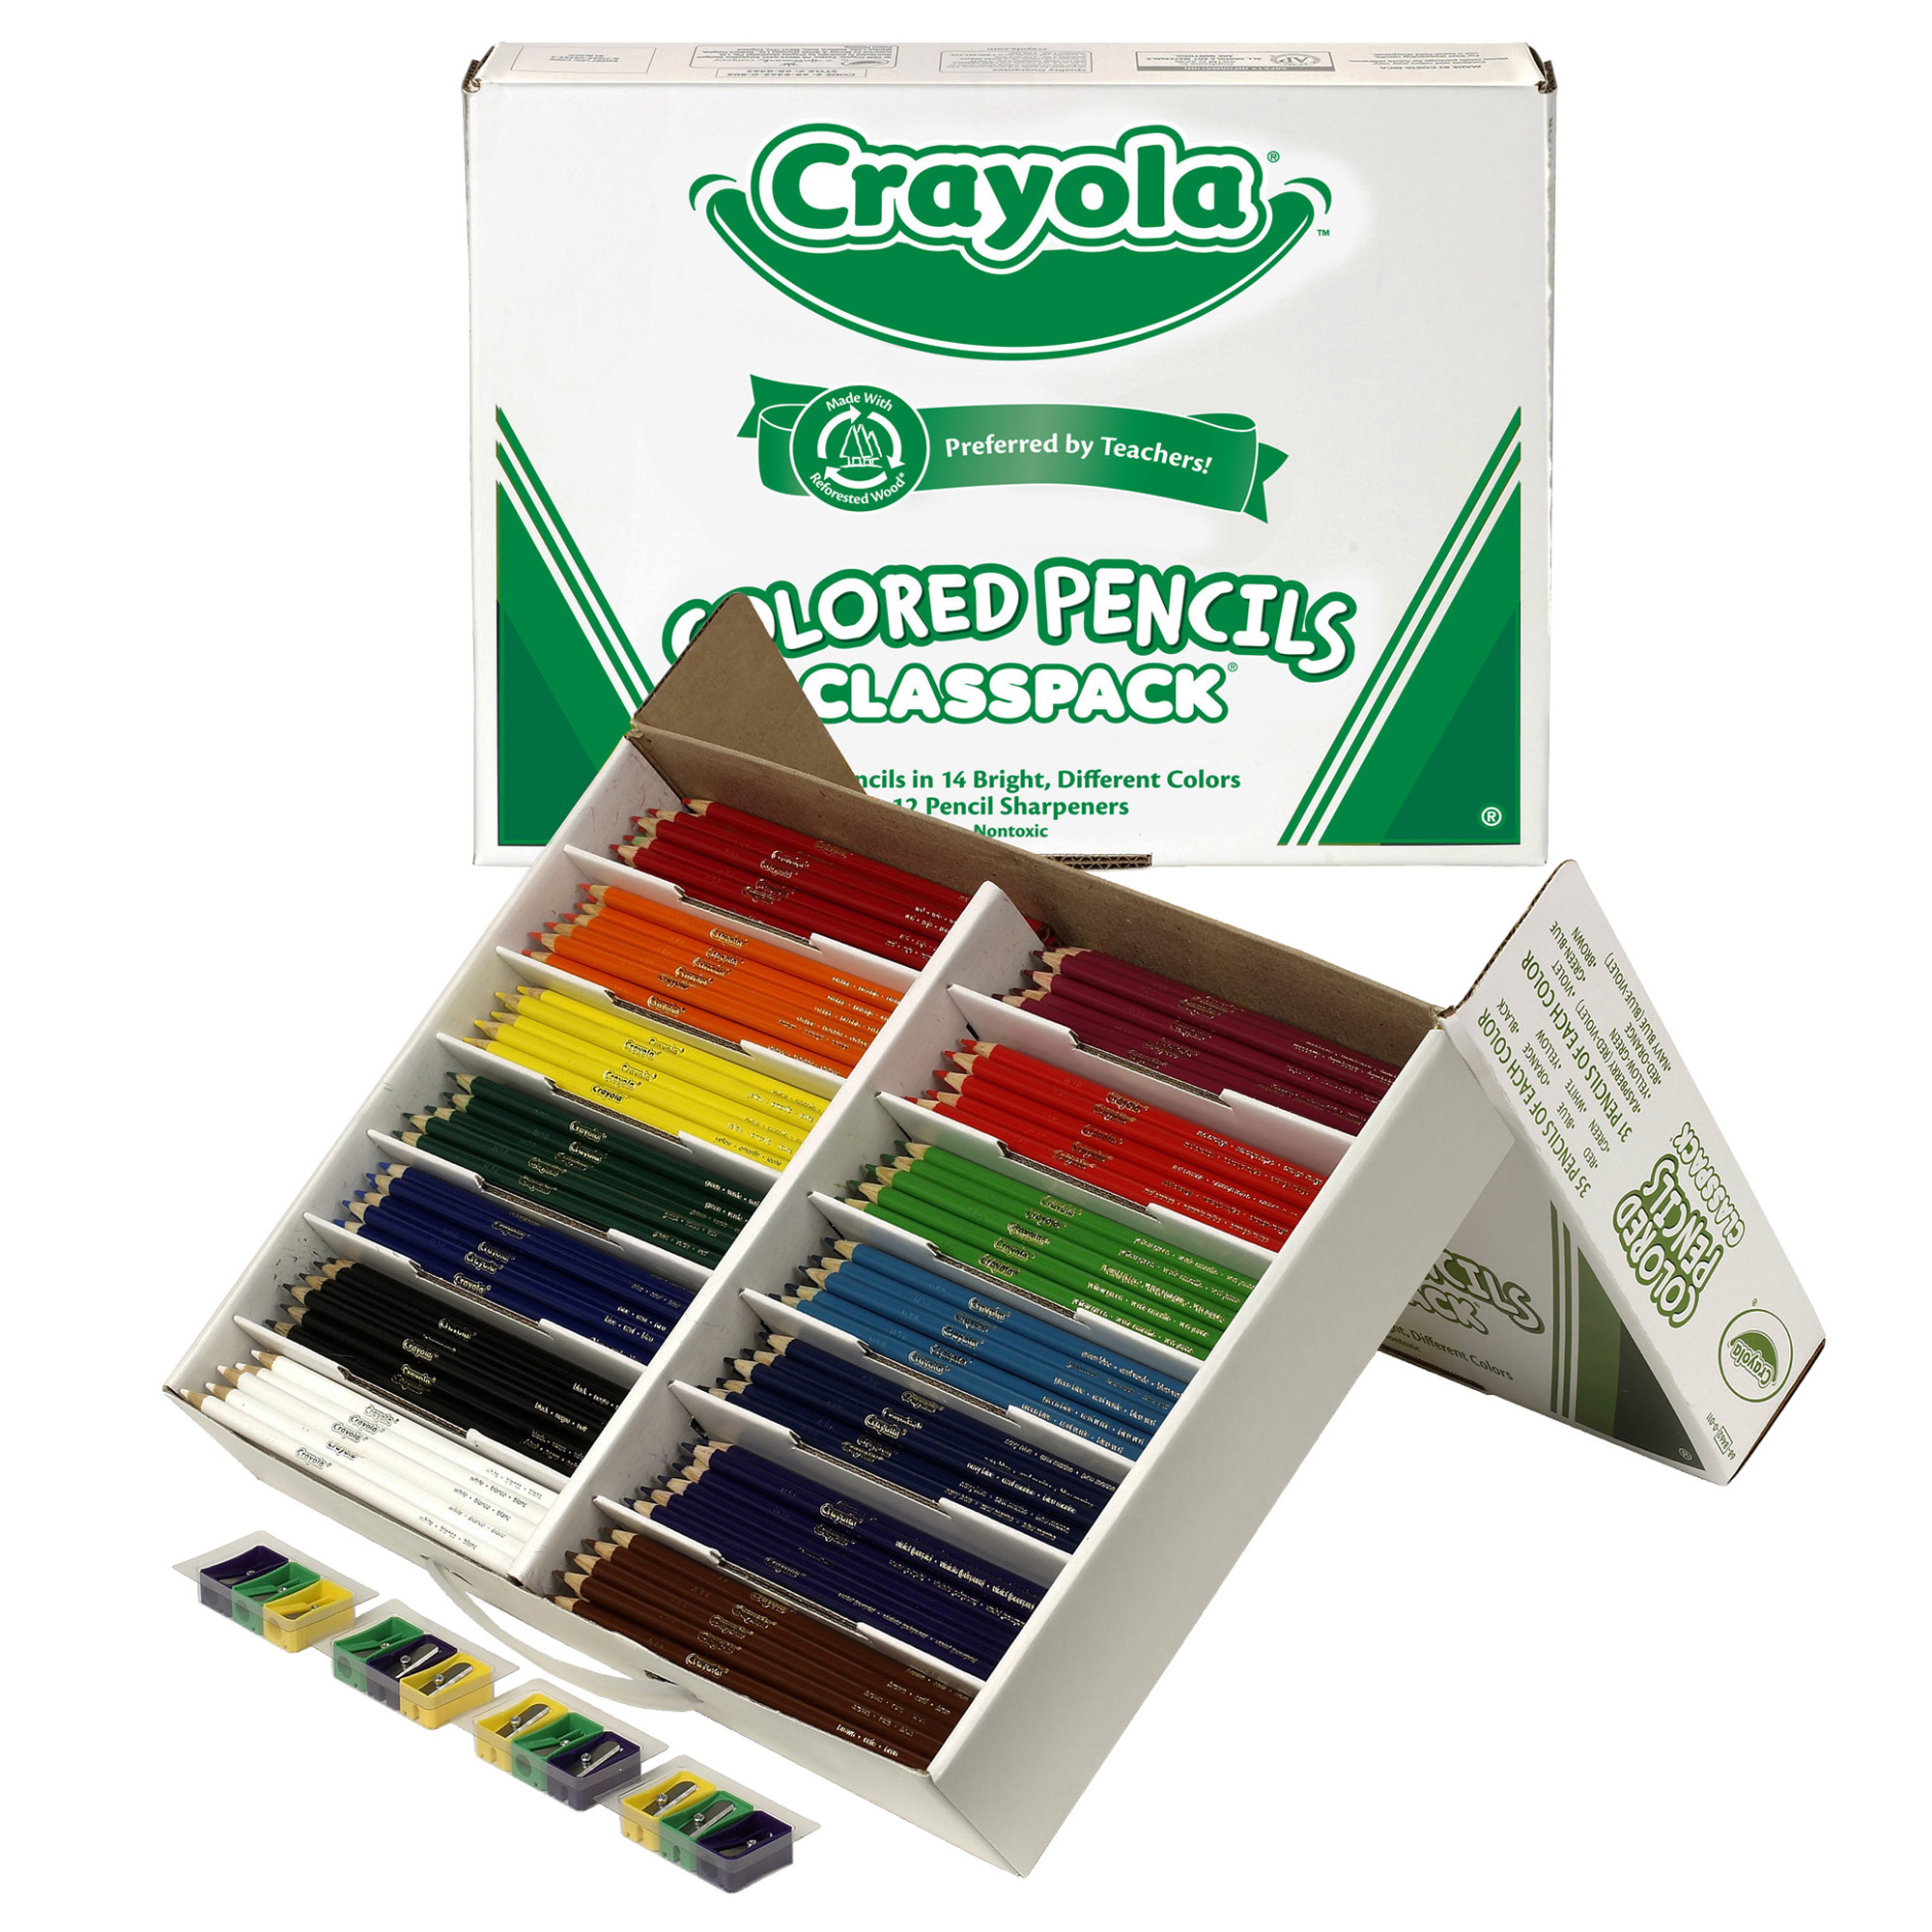 Crayola Colored Pencil Classpack 14 Colors 462 Count Walmart Com